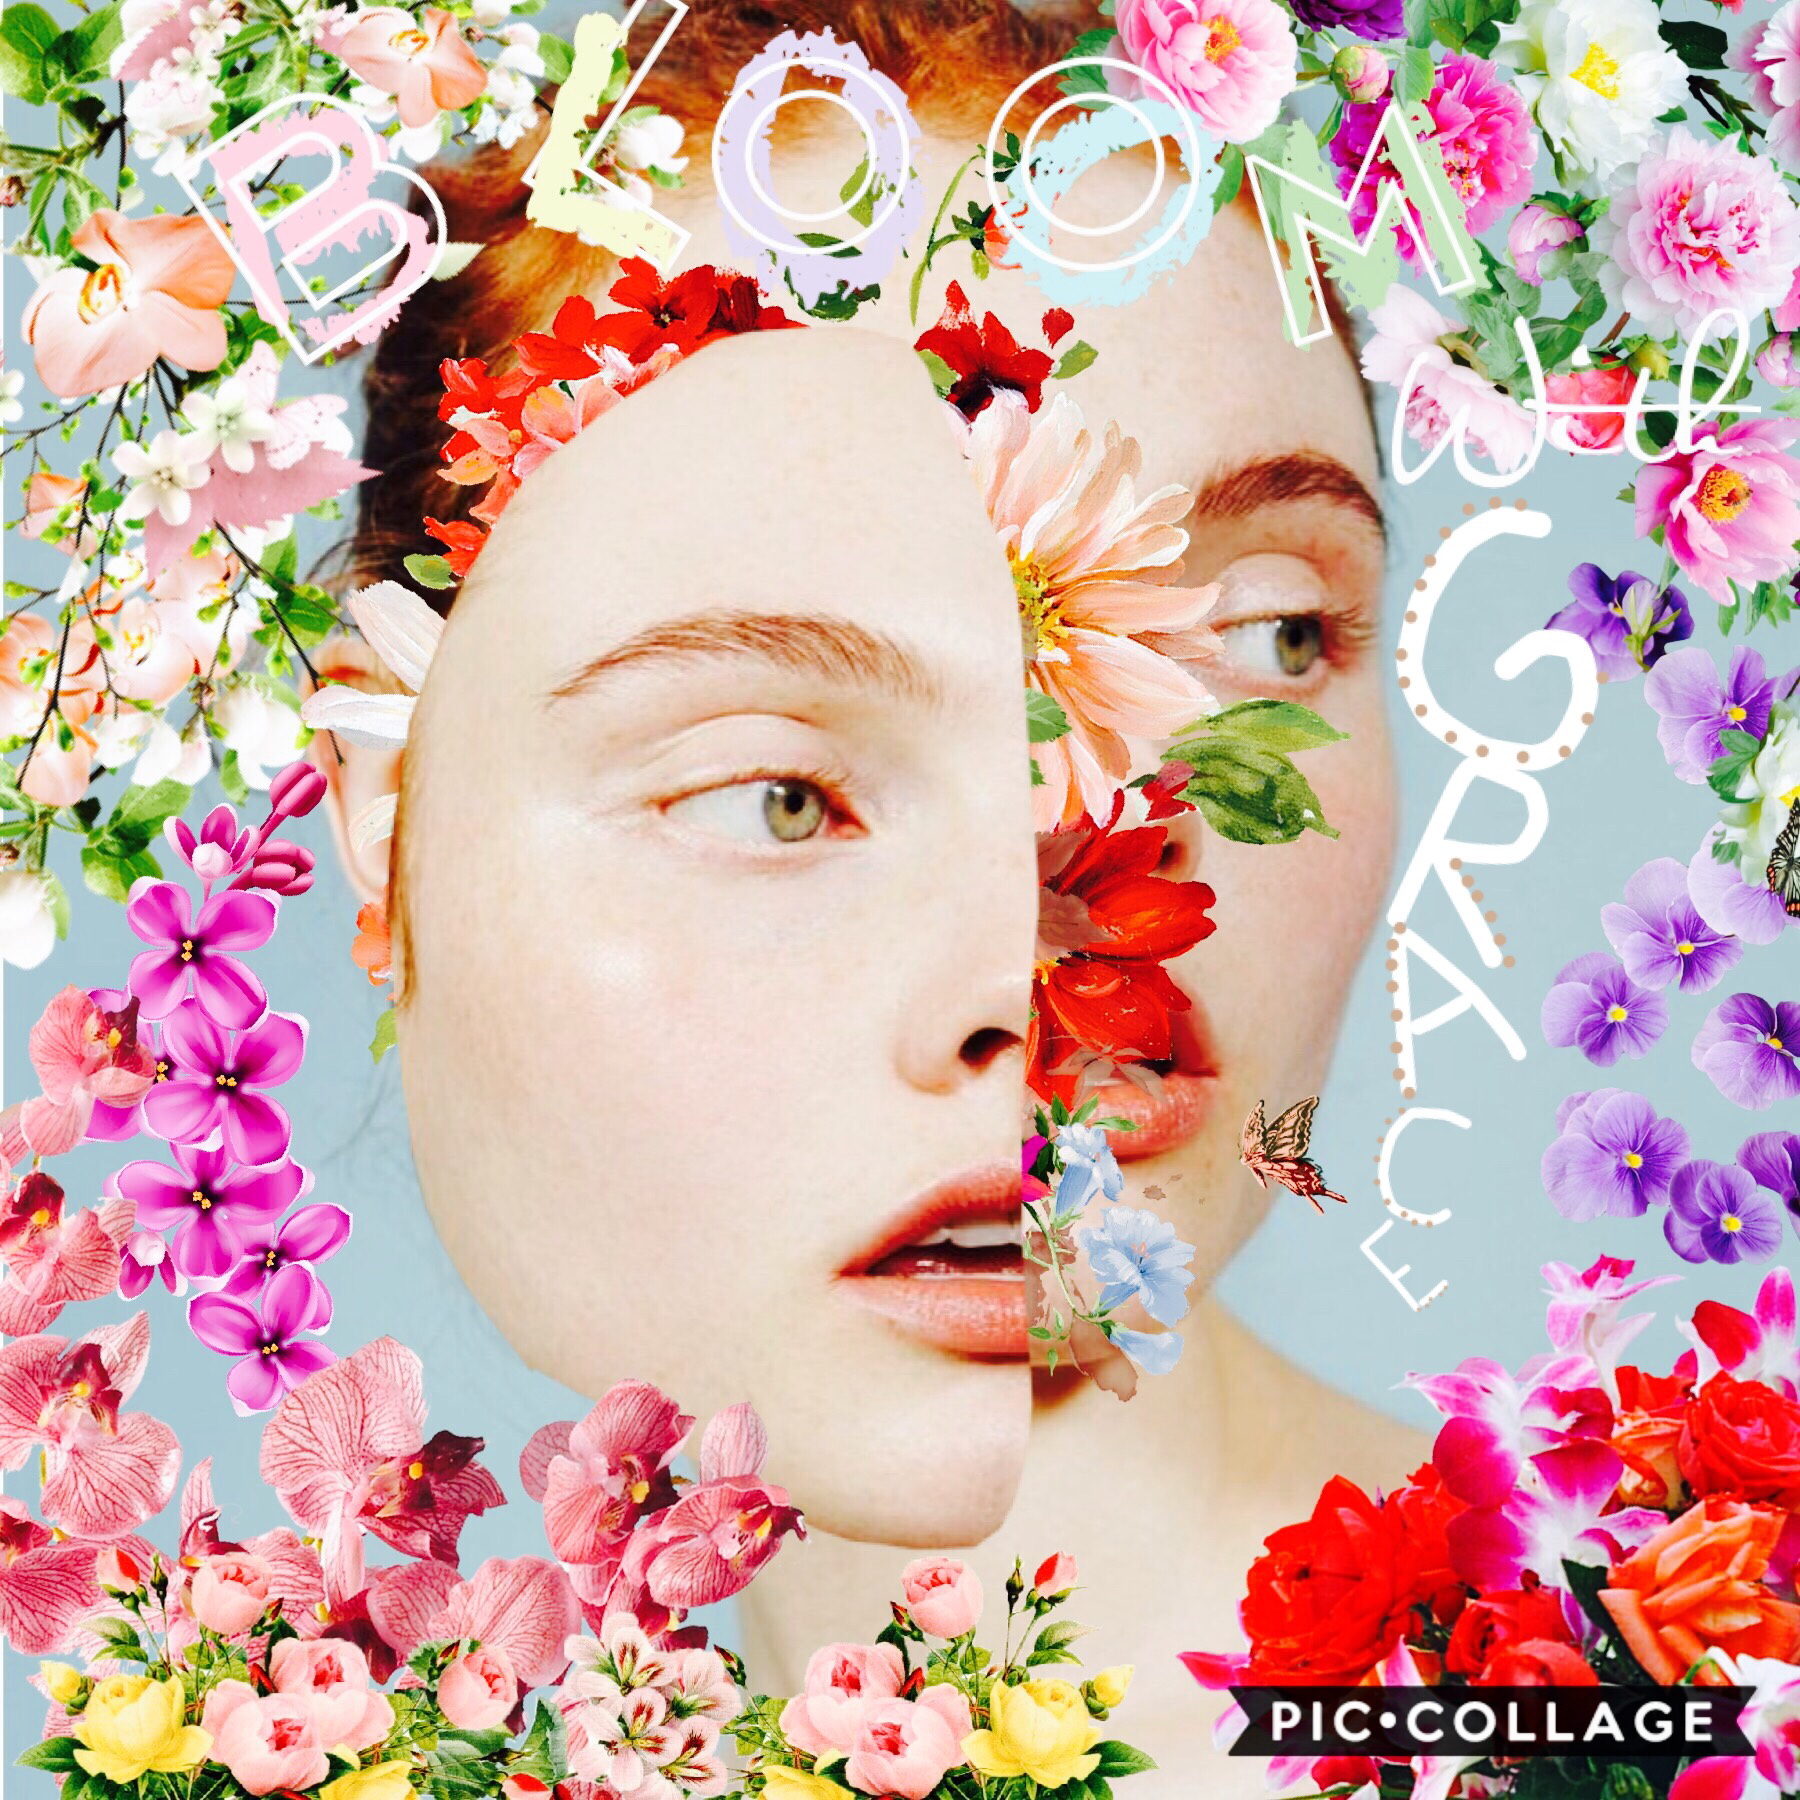 ✨tap✨ 𝒷𝓁𝑜𝑜𝓂 𝓌𝒾𝓉𝒽 𝑔𝓇𝒶𝒸𝑒 This was inspired by... The_Bear_With_The_Petals. I absolutely love her style so I decided to try it! Definitely not as good as her collages... but it was still fun to make!💗😊 QOTD: favorite music genre? AOTD: classical 𝒽𝒶𝓋𝑒 𝒶 𝓁𝑜𝓋𝑒𝓁